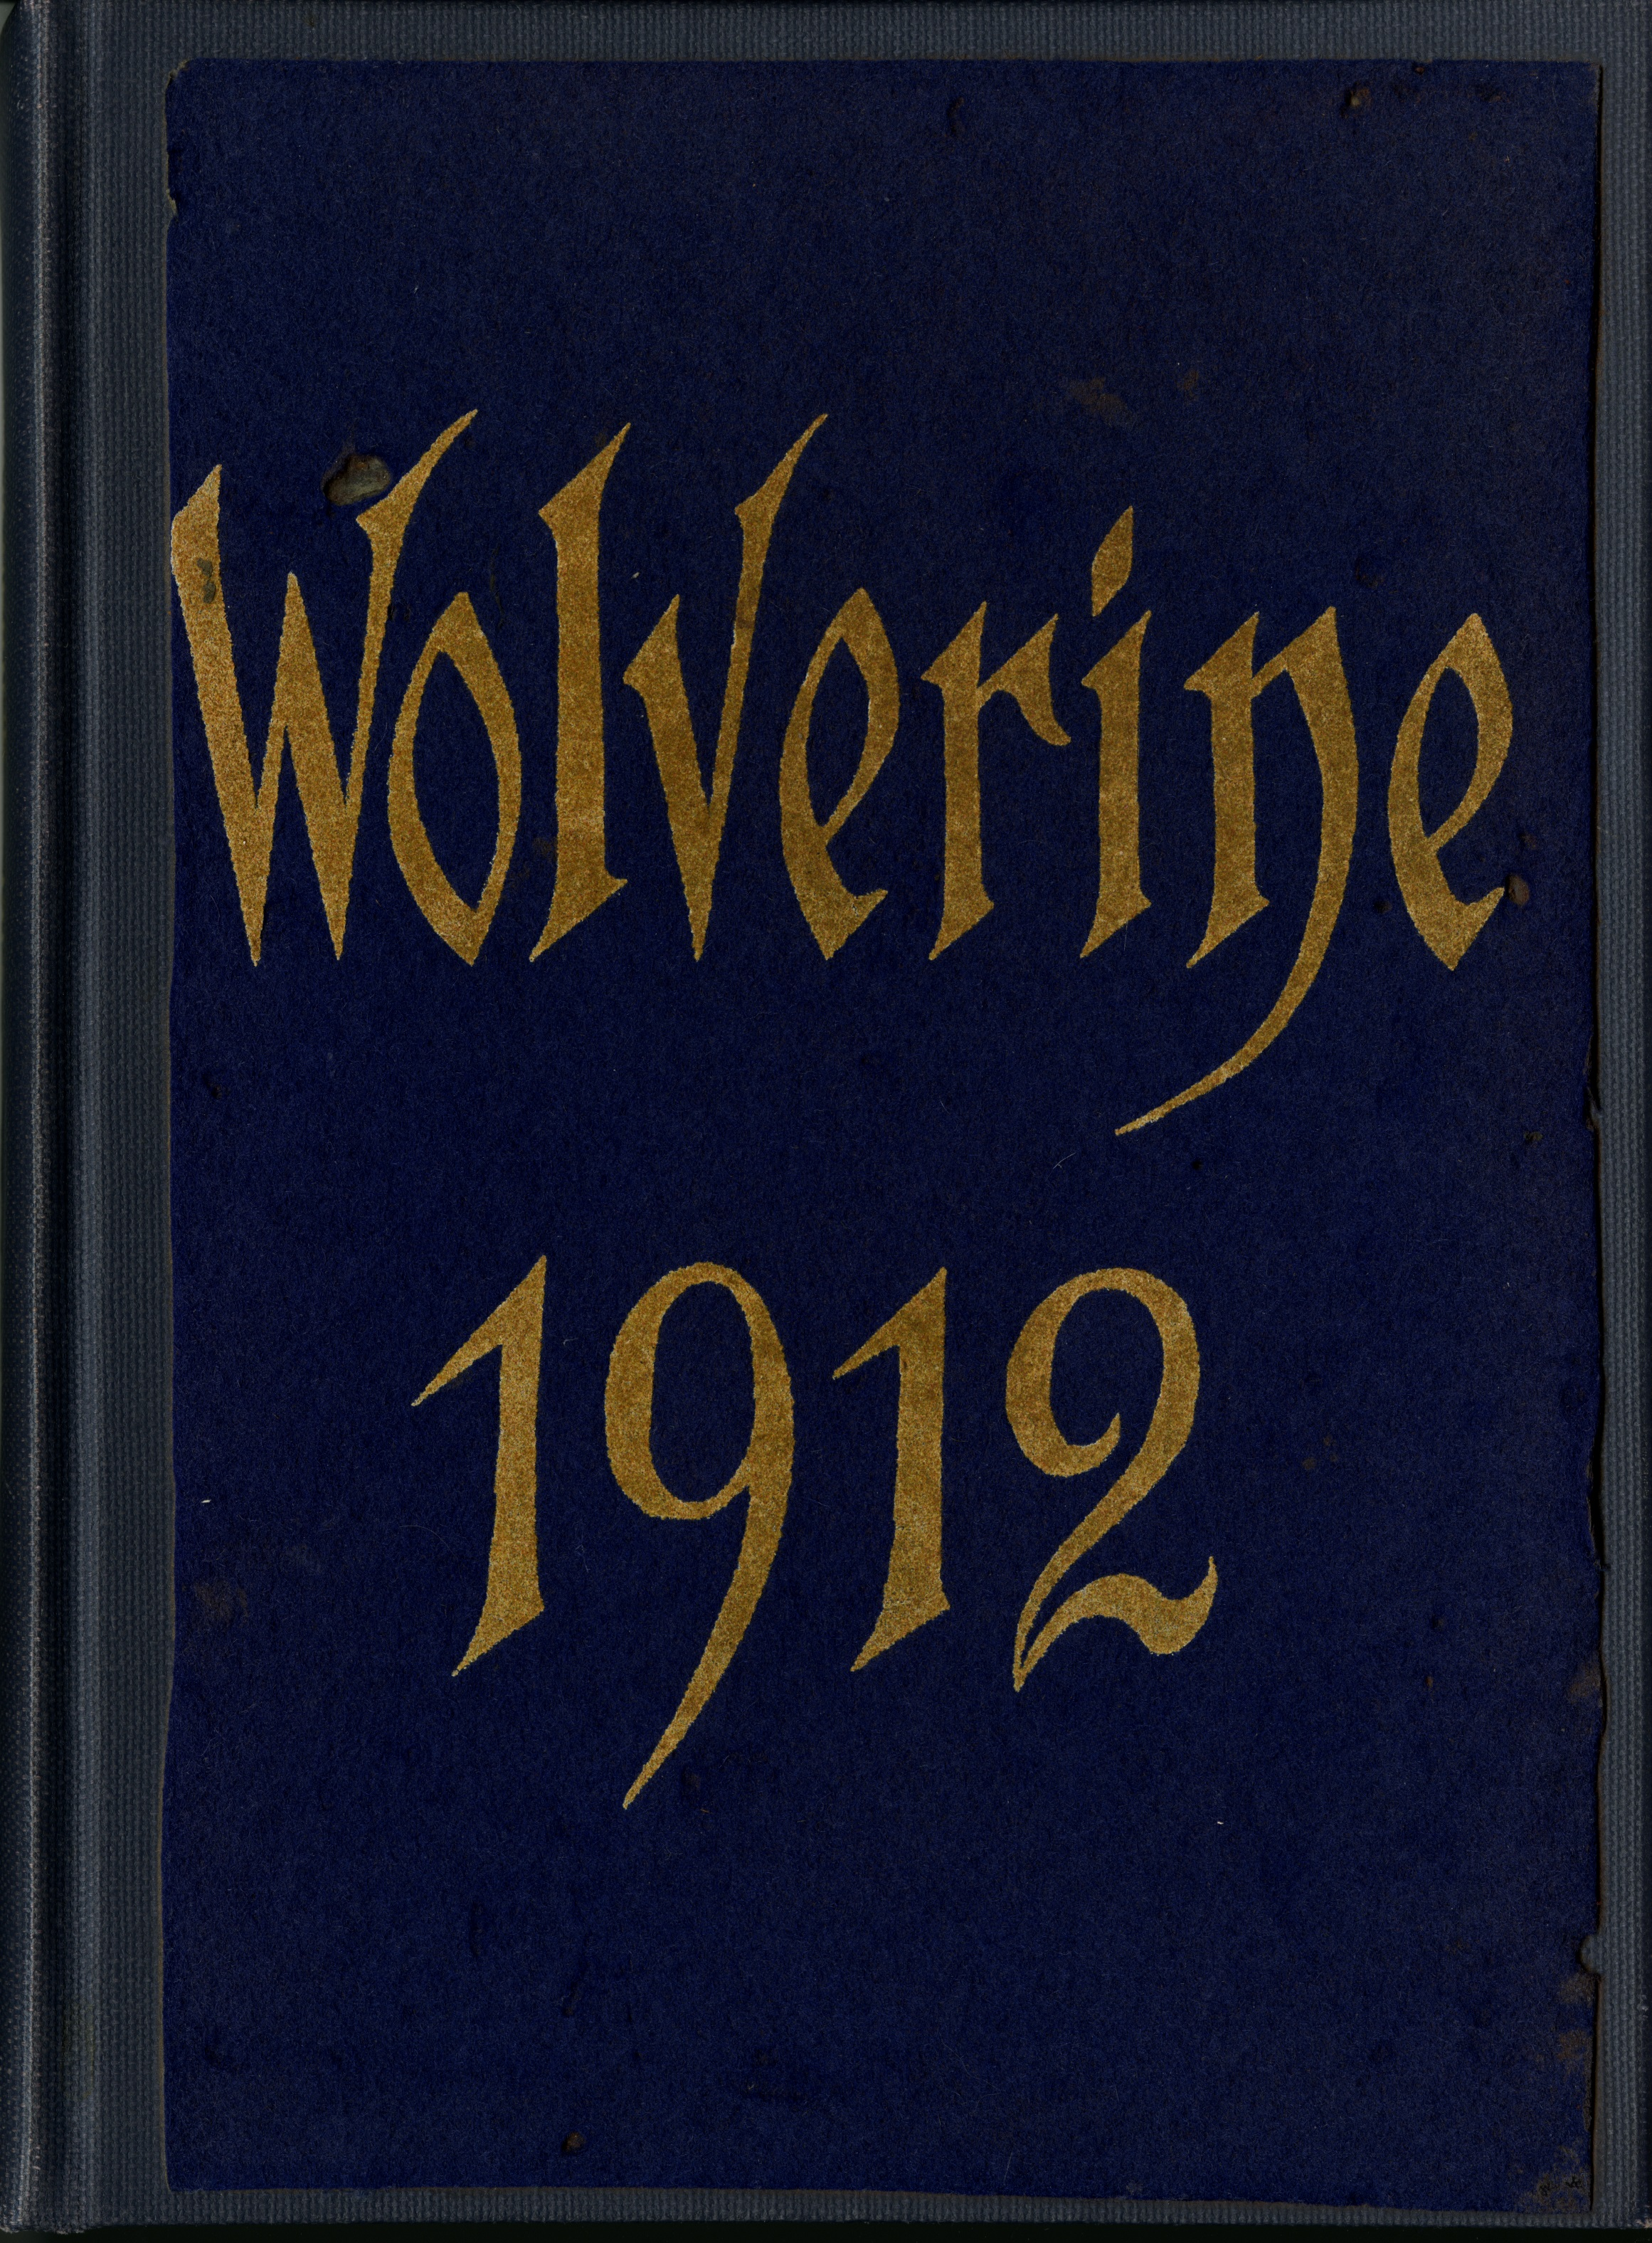 MSU Yearbook, 1912